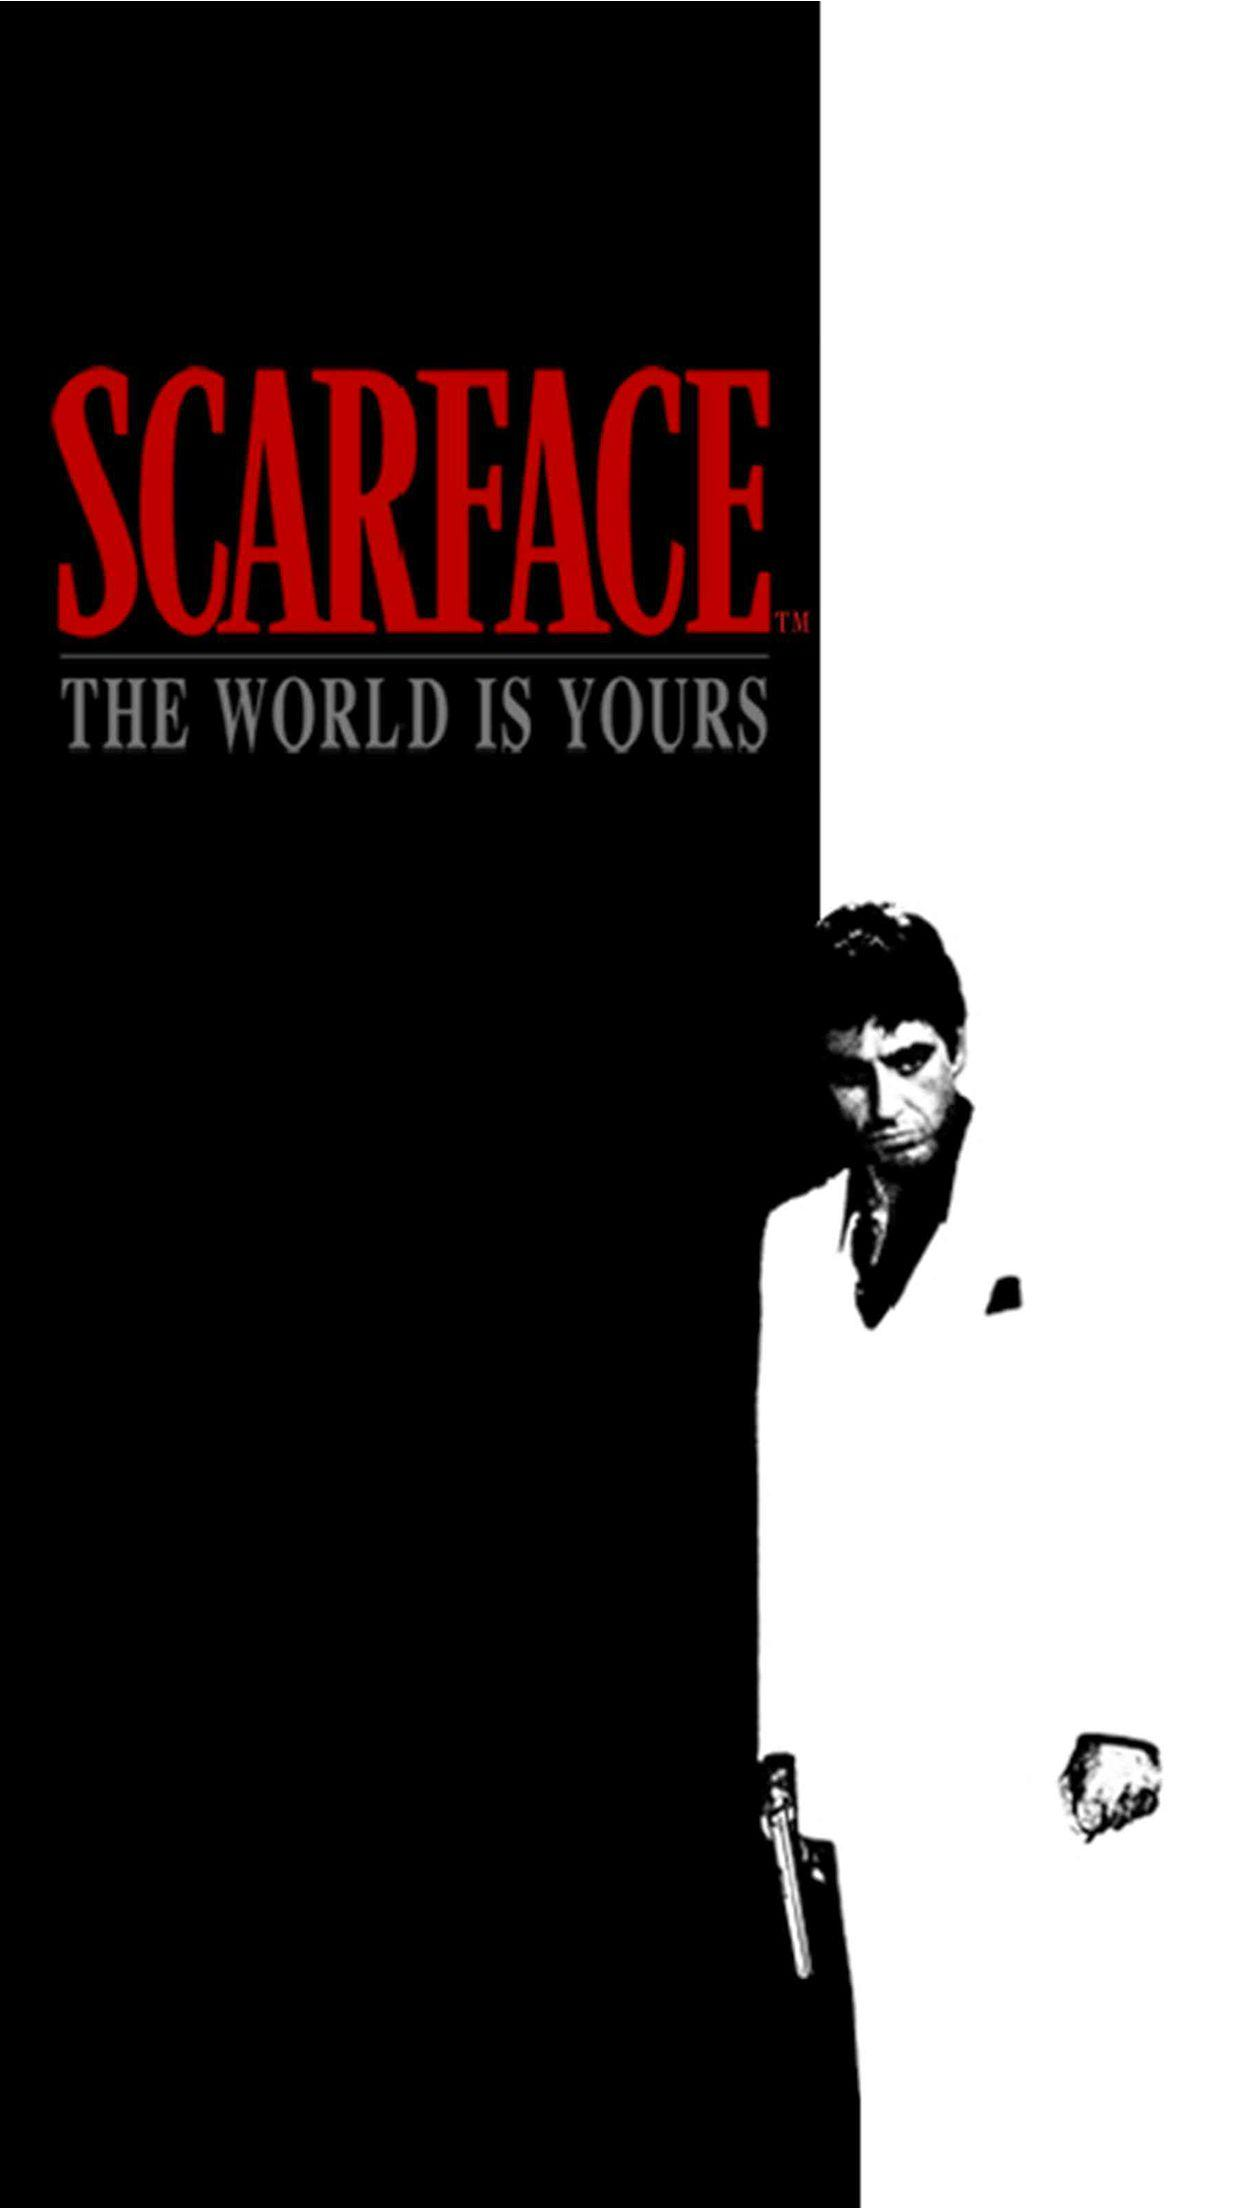 Supreme Scarface Wallpapers - Wallpaper Cave